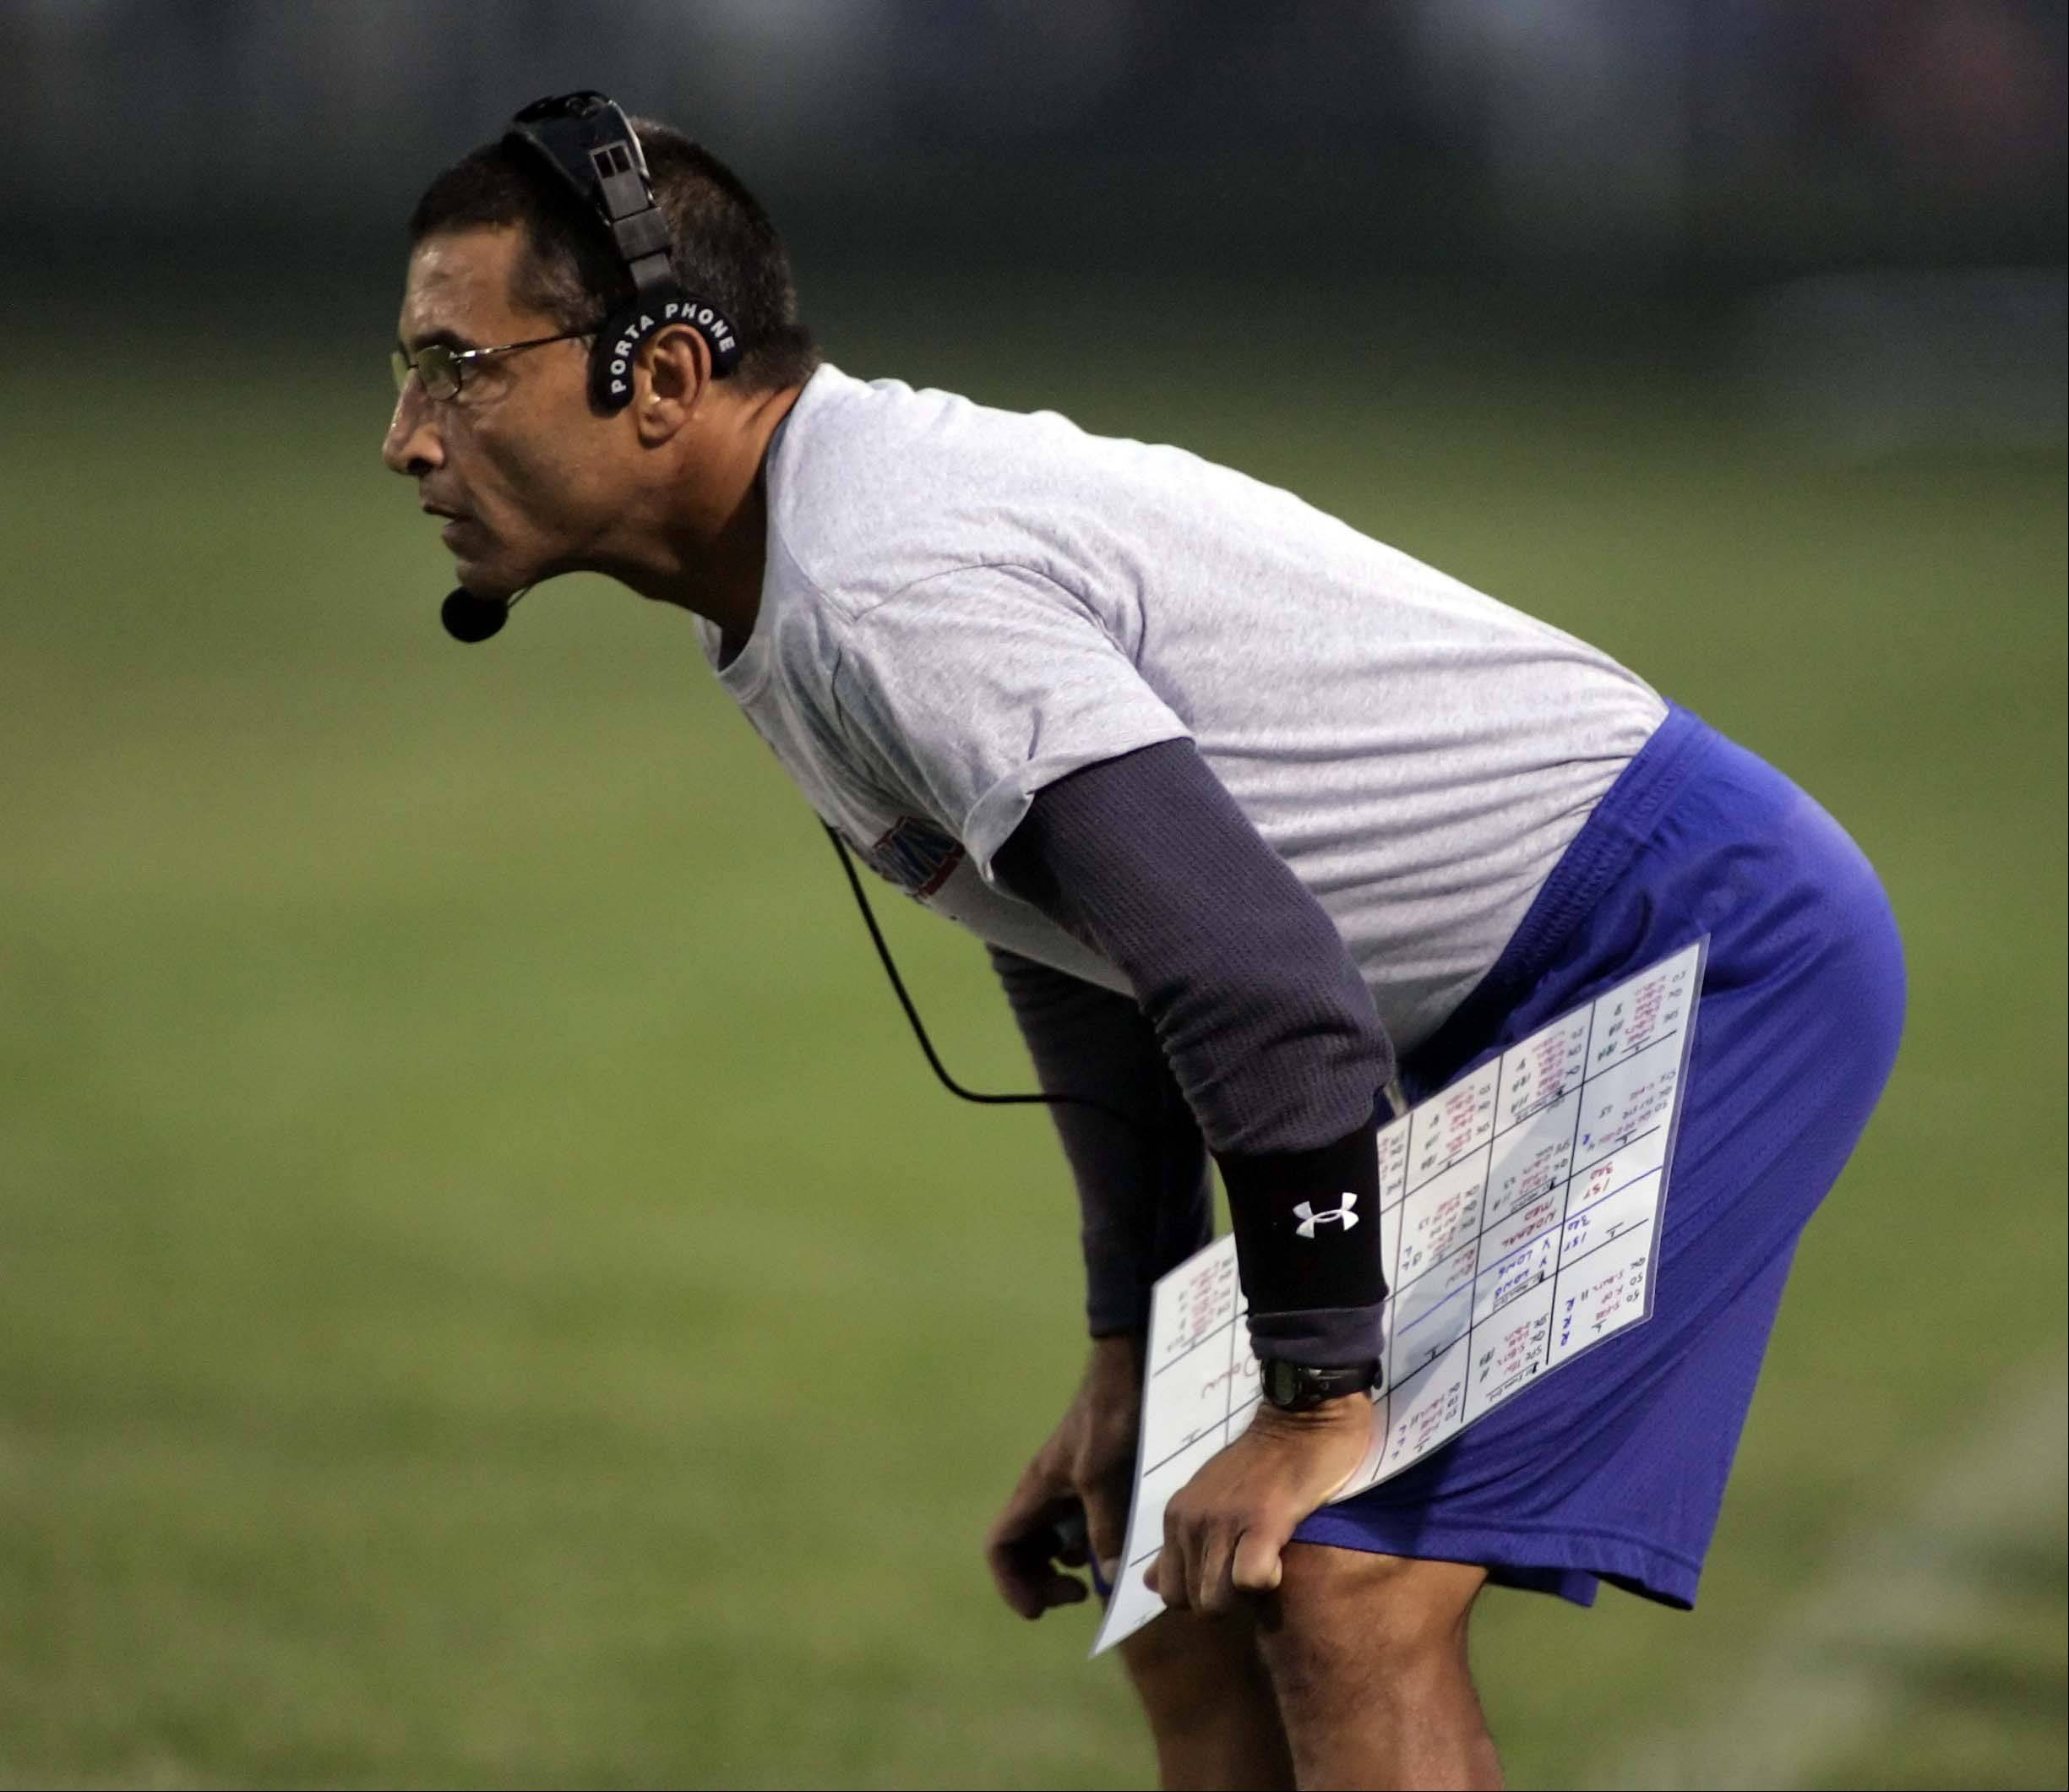 Dundee-Crown coach Vito Andriola has the Chargers playing their best football in many years. D-C is 3-1 heading into Friday night's key Fox Valley Conference Valley Division matchup at Huntley.